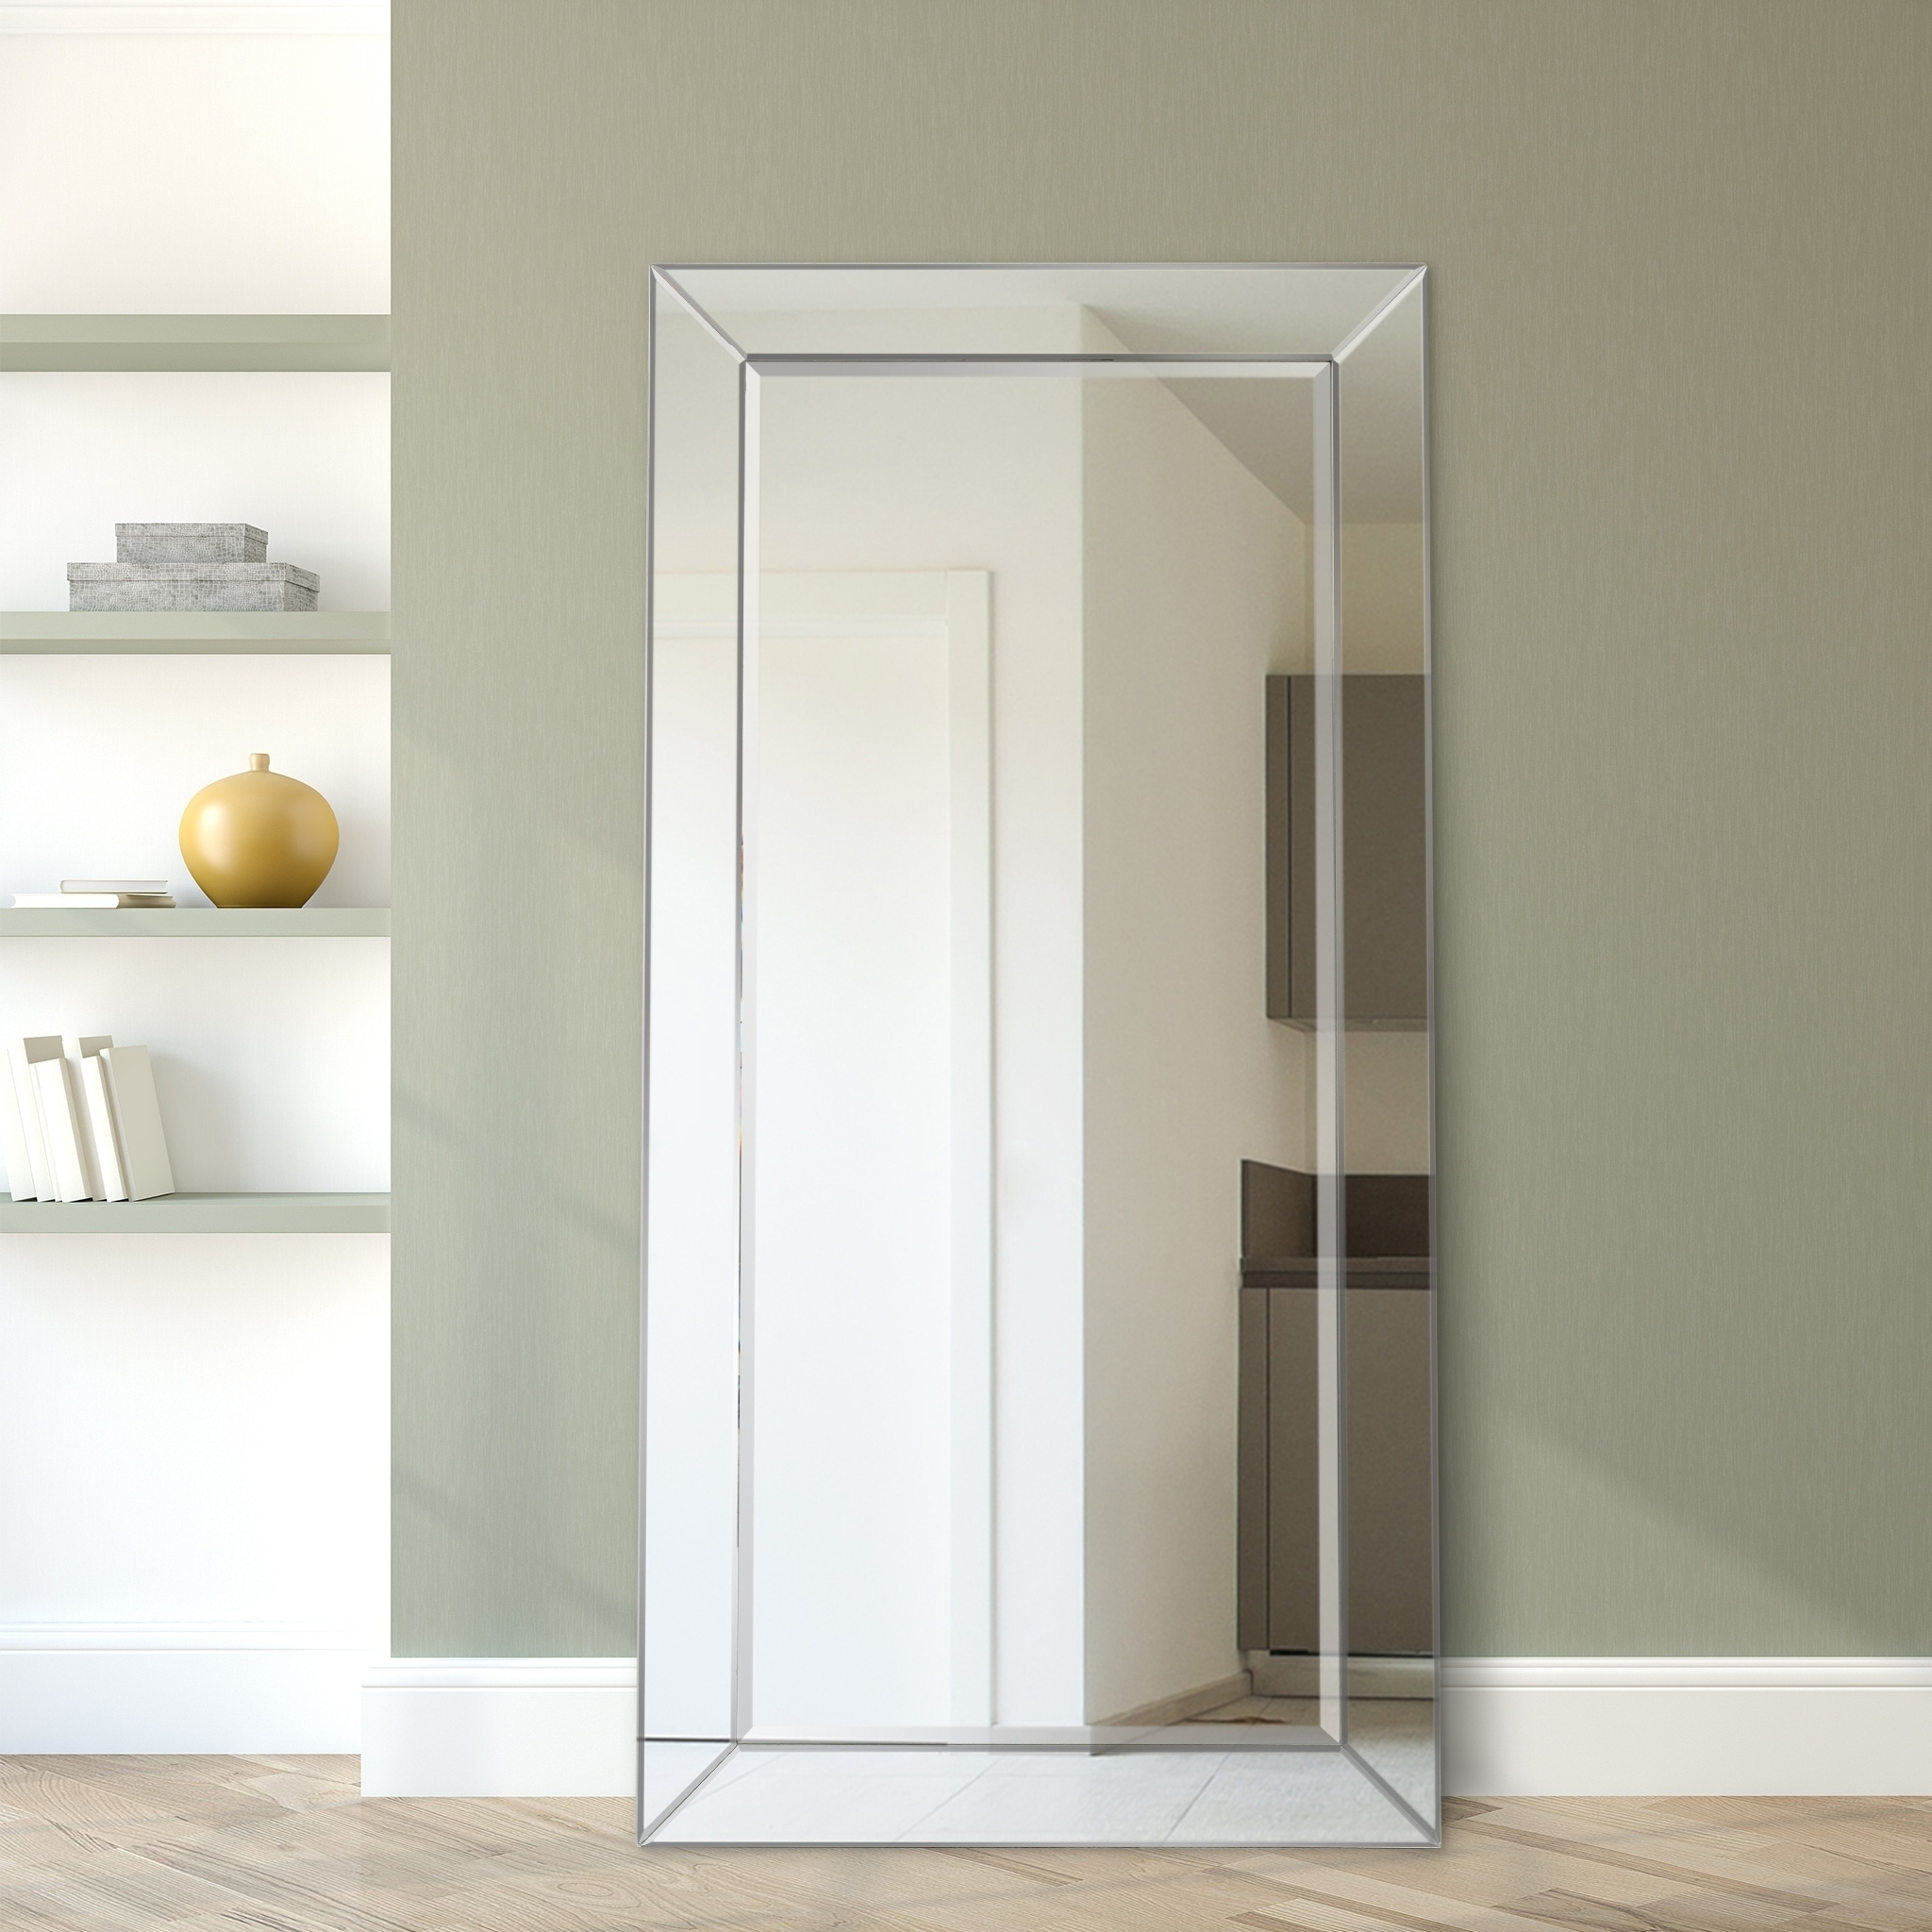 Shop Moderno Beveled Leaner Wall Mirror Bathroom Bedroom Living Room Ready To Hang Clear Overstock 24220809